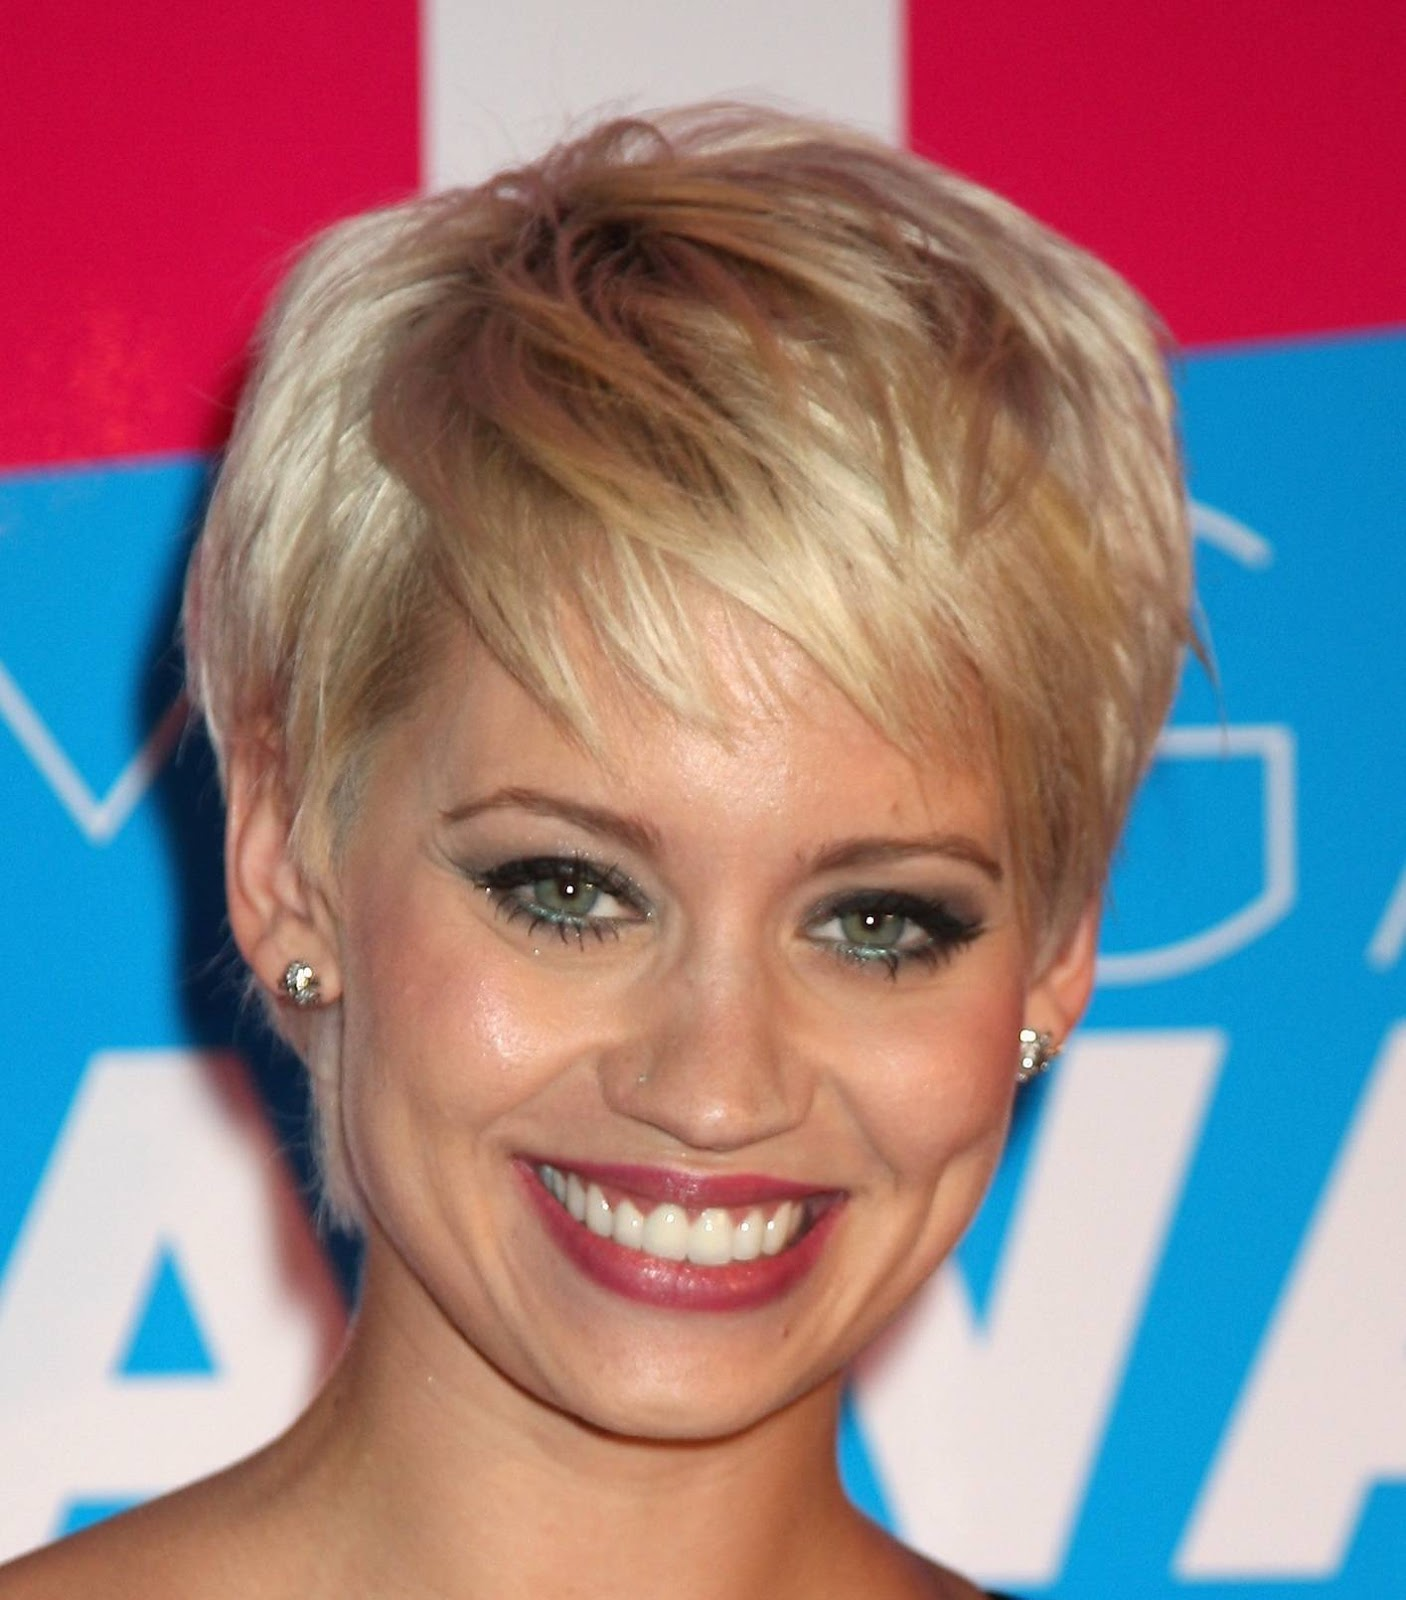 Hairstyles For Thin Fine Hair Round Face: Short Hairstyles For Round Faces